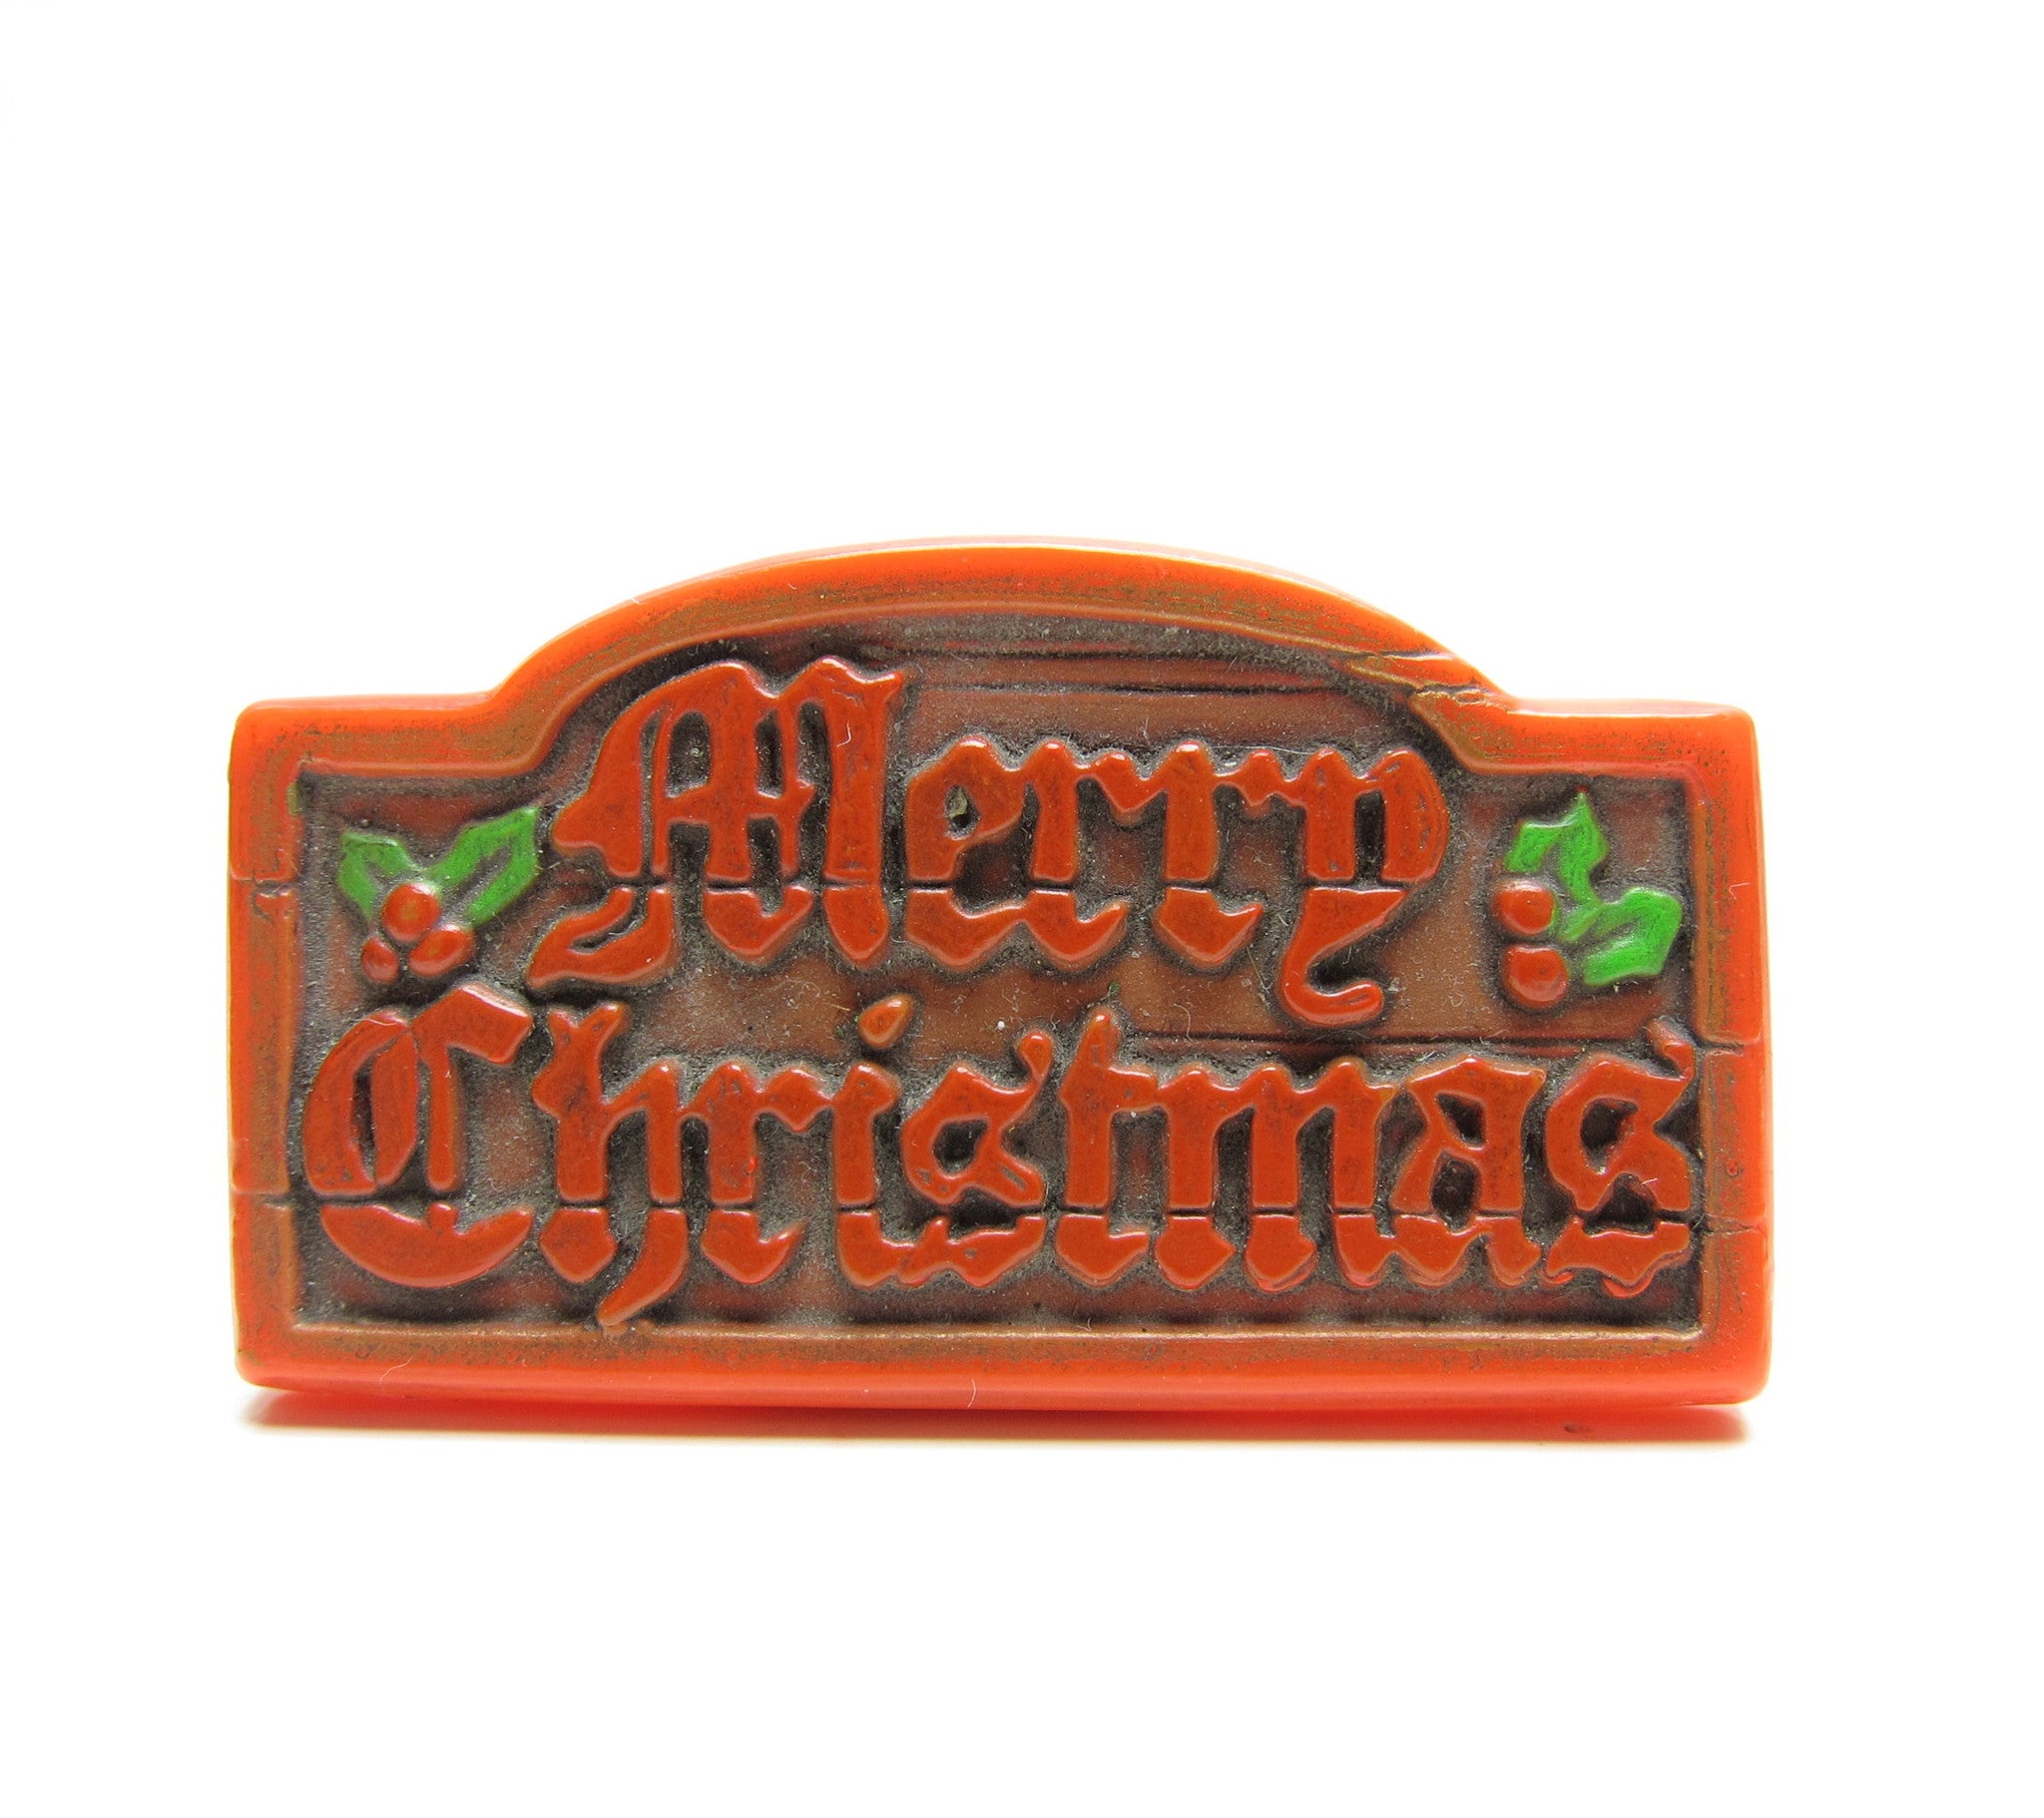 Merry Christmas Hallmark lapel pin